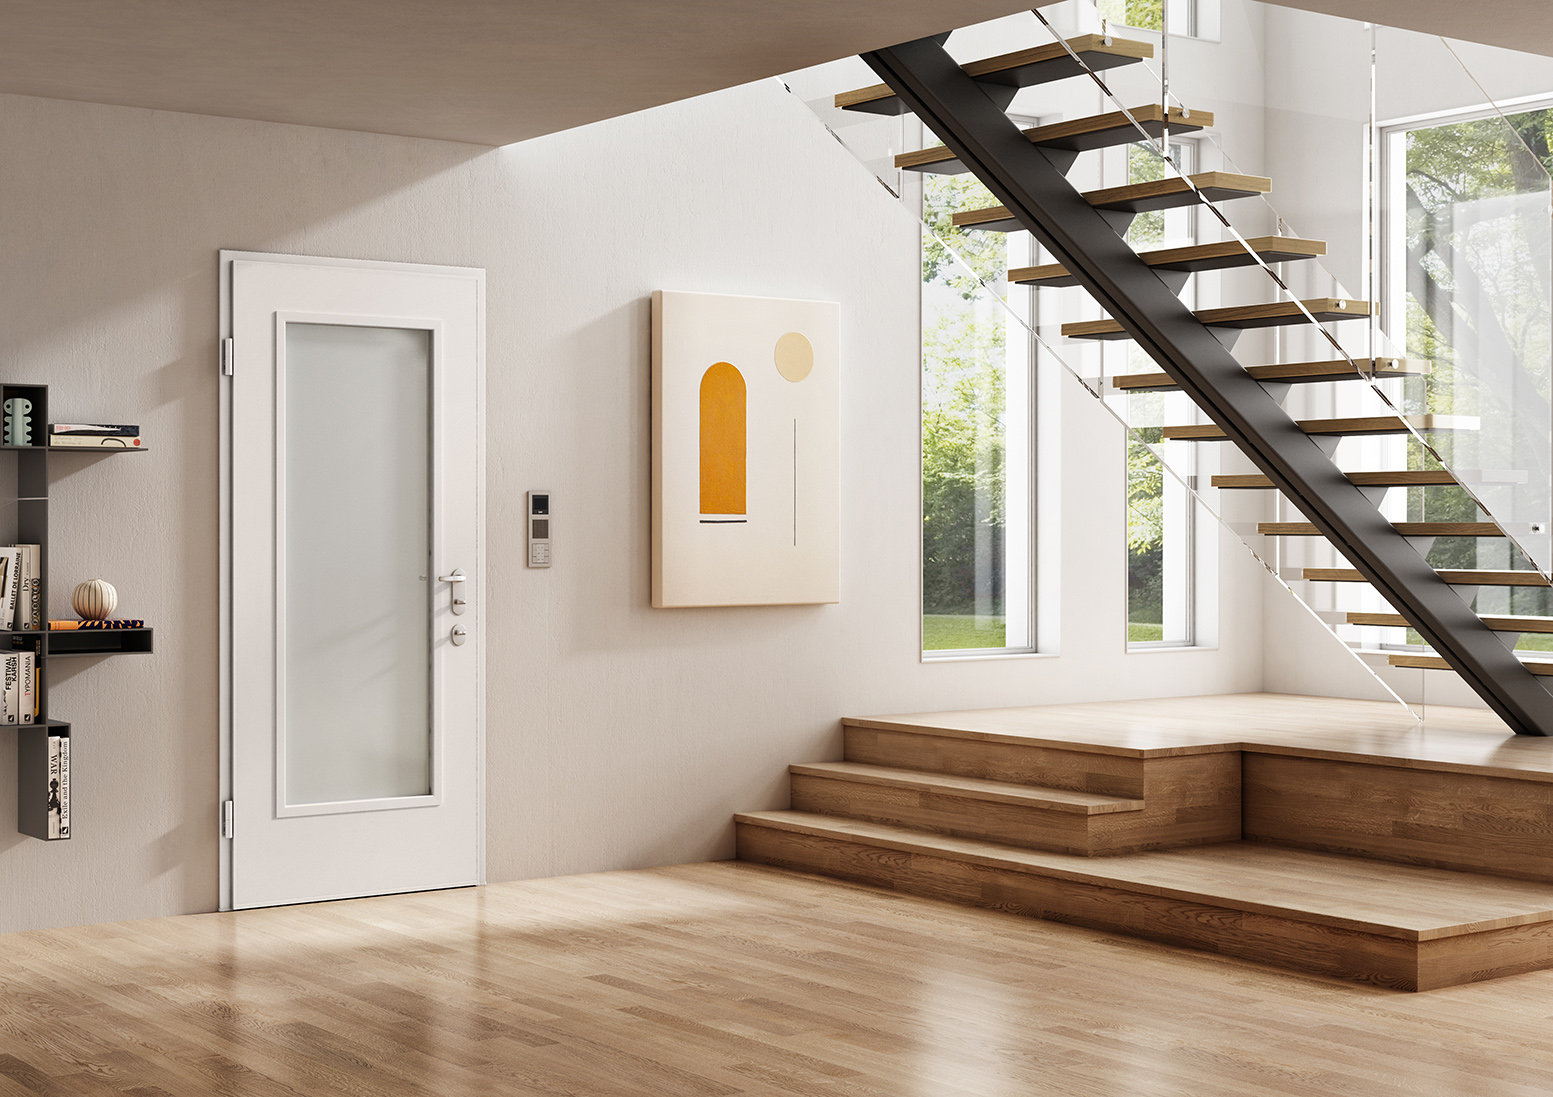 Security doors 883 with glass insert